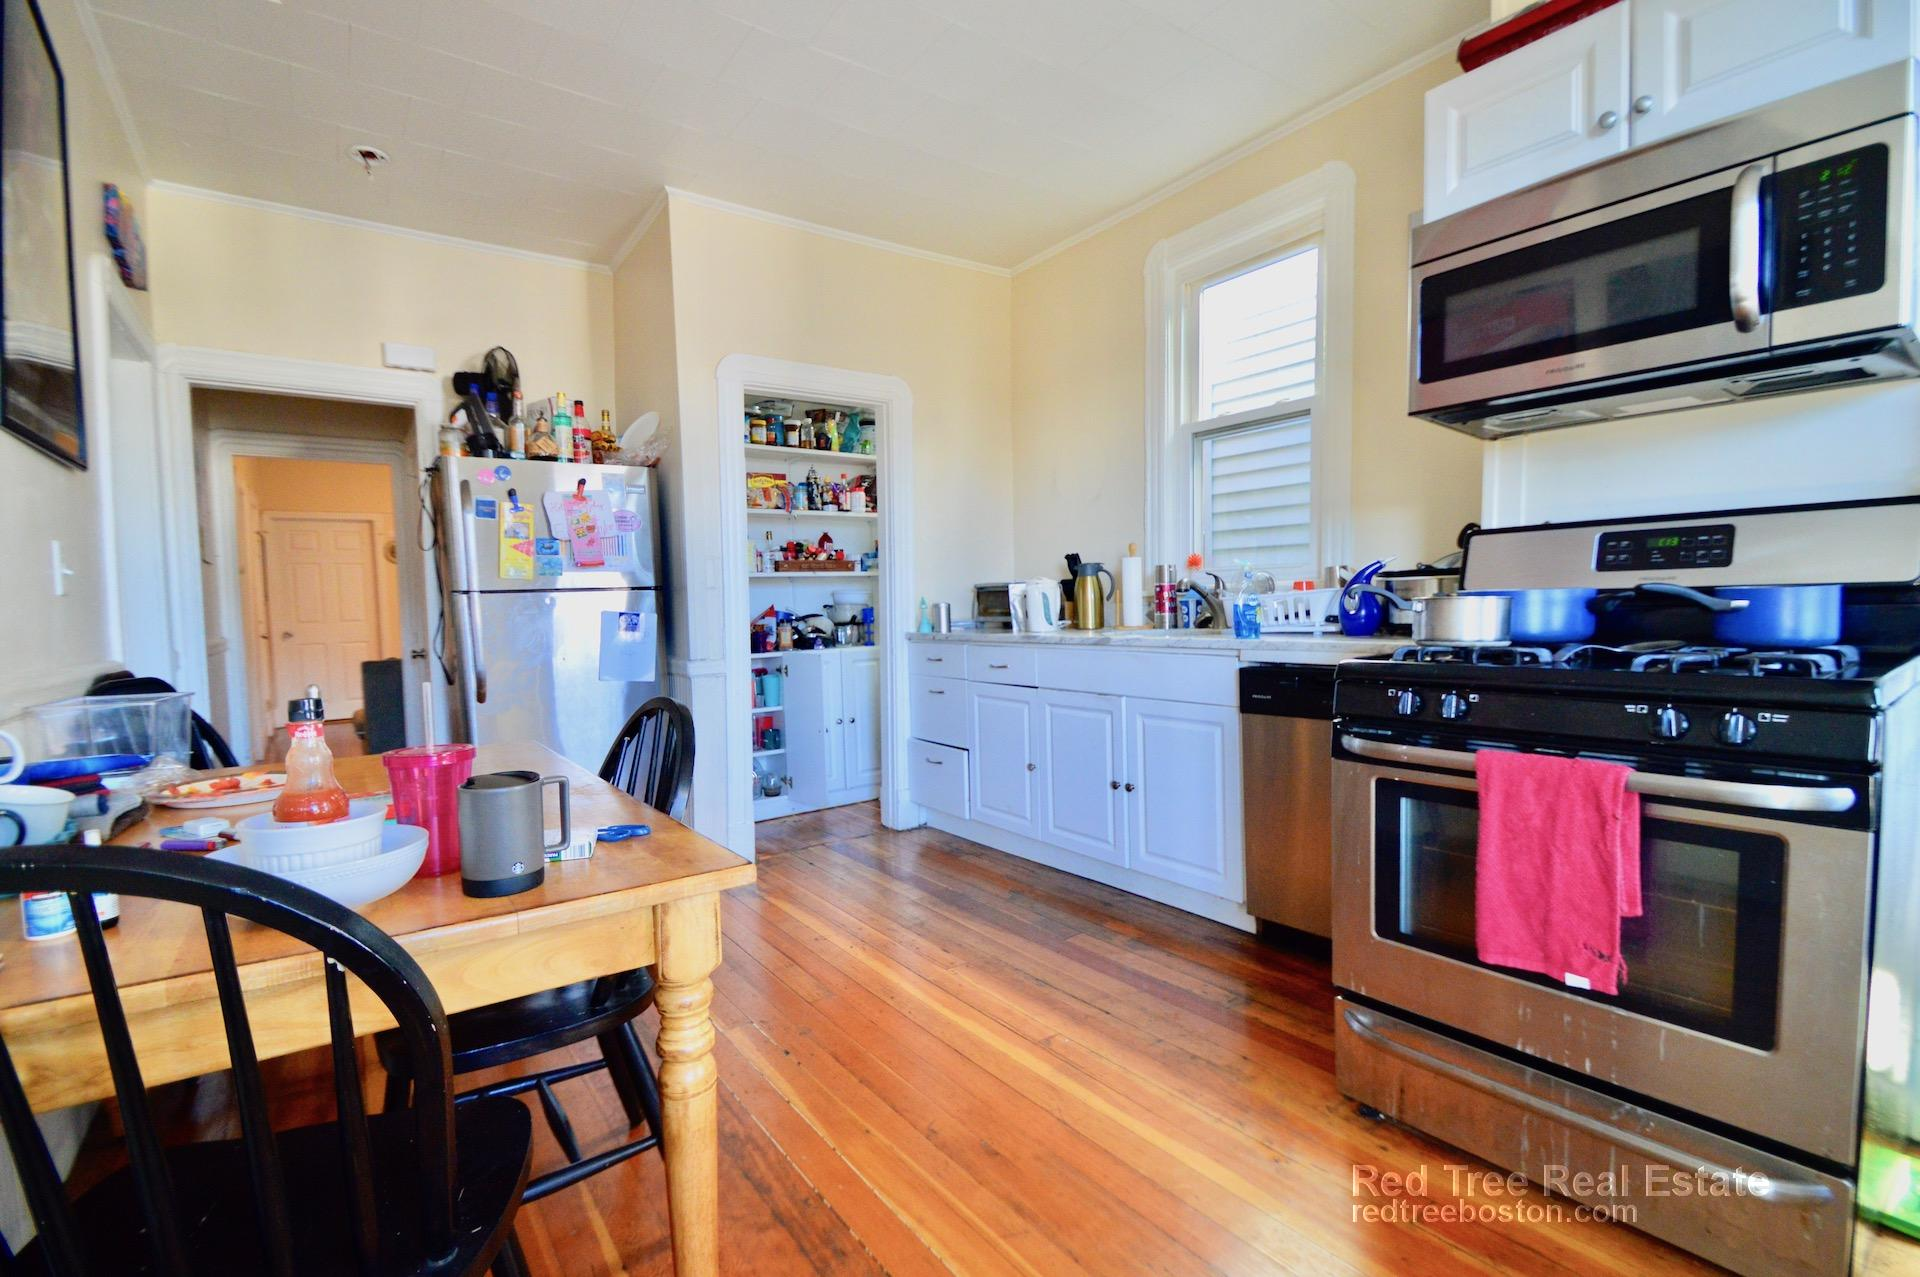 Pictures of  property for rent on Havre St., Boston, MA 02128